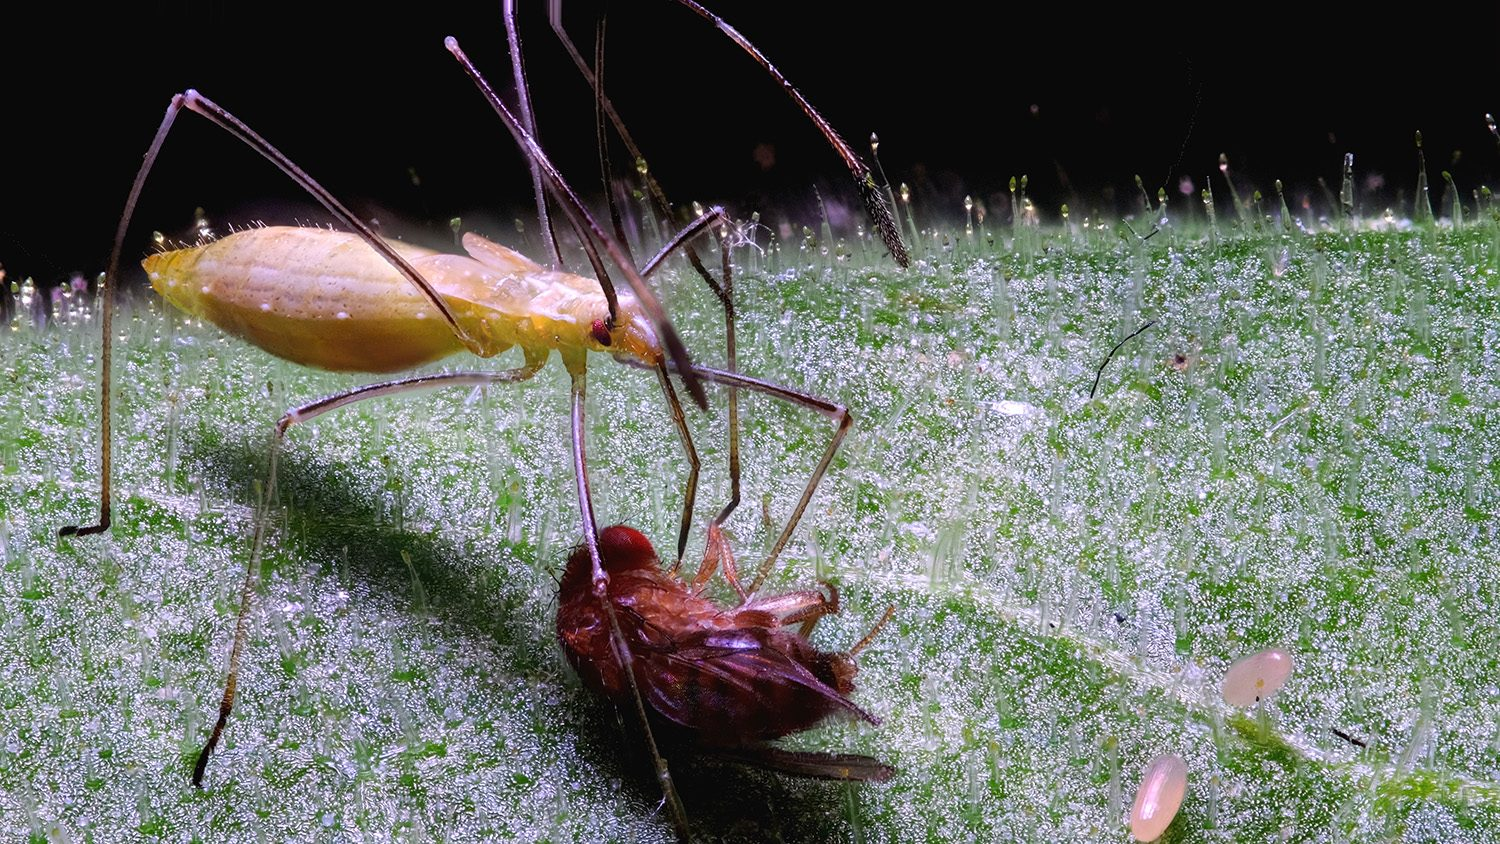 Close up of a stickybug on a leave with another insect.